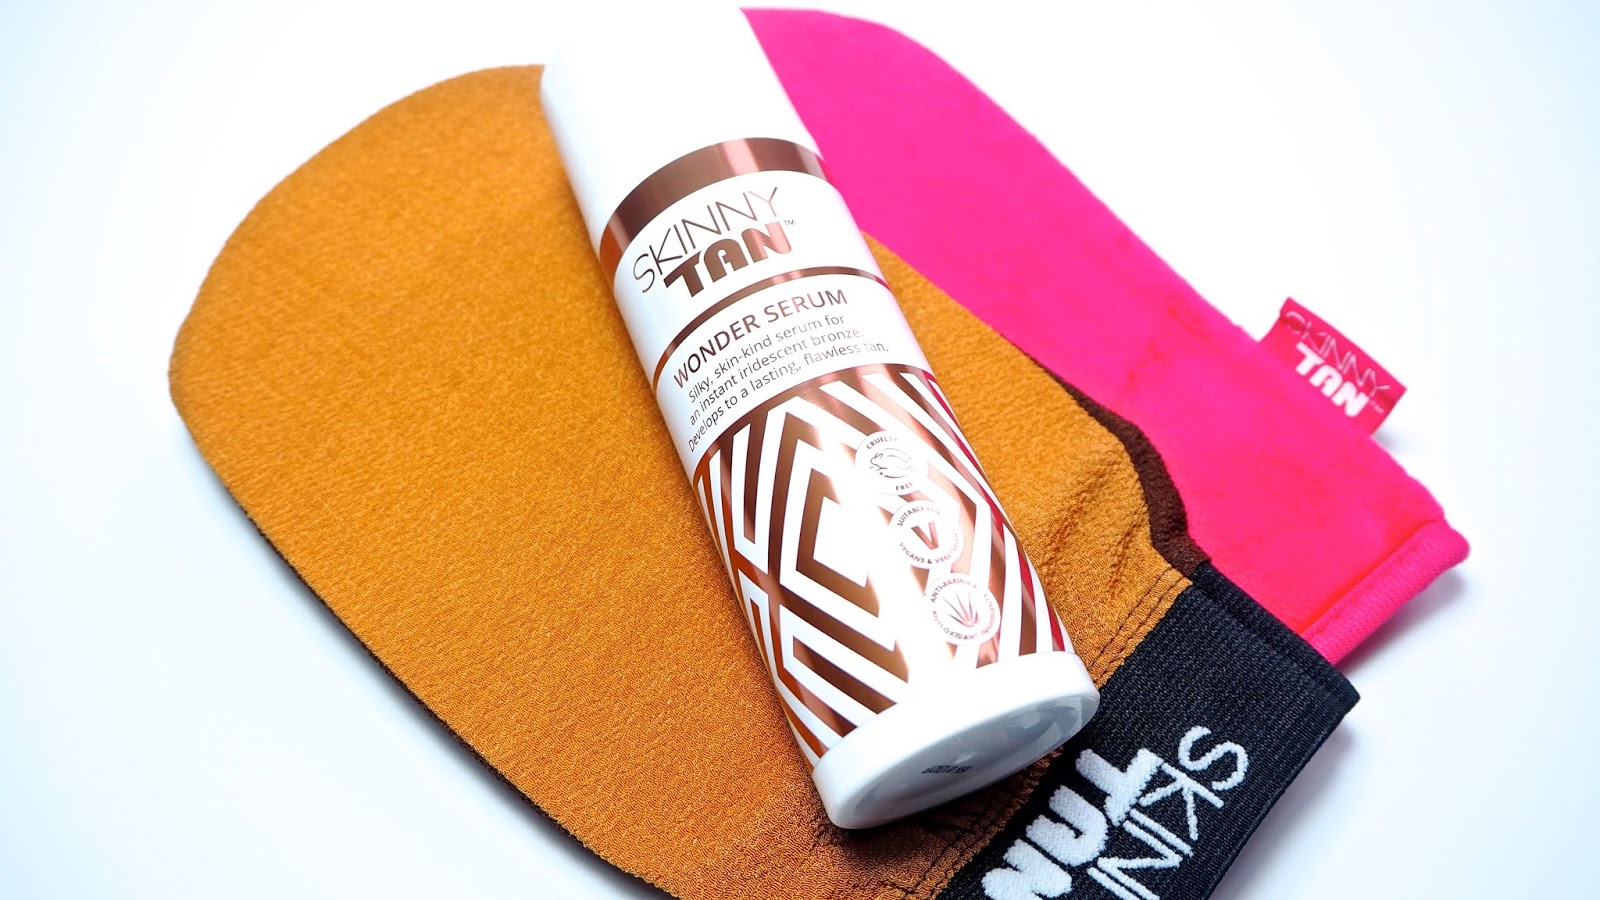 Skinny Tan Wonder Serum, Exfoliating Mitt and Dual Sided Tanning Mitt